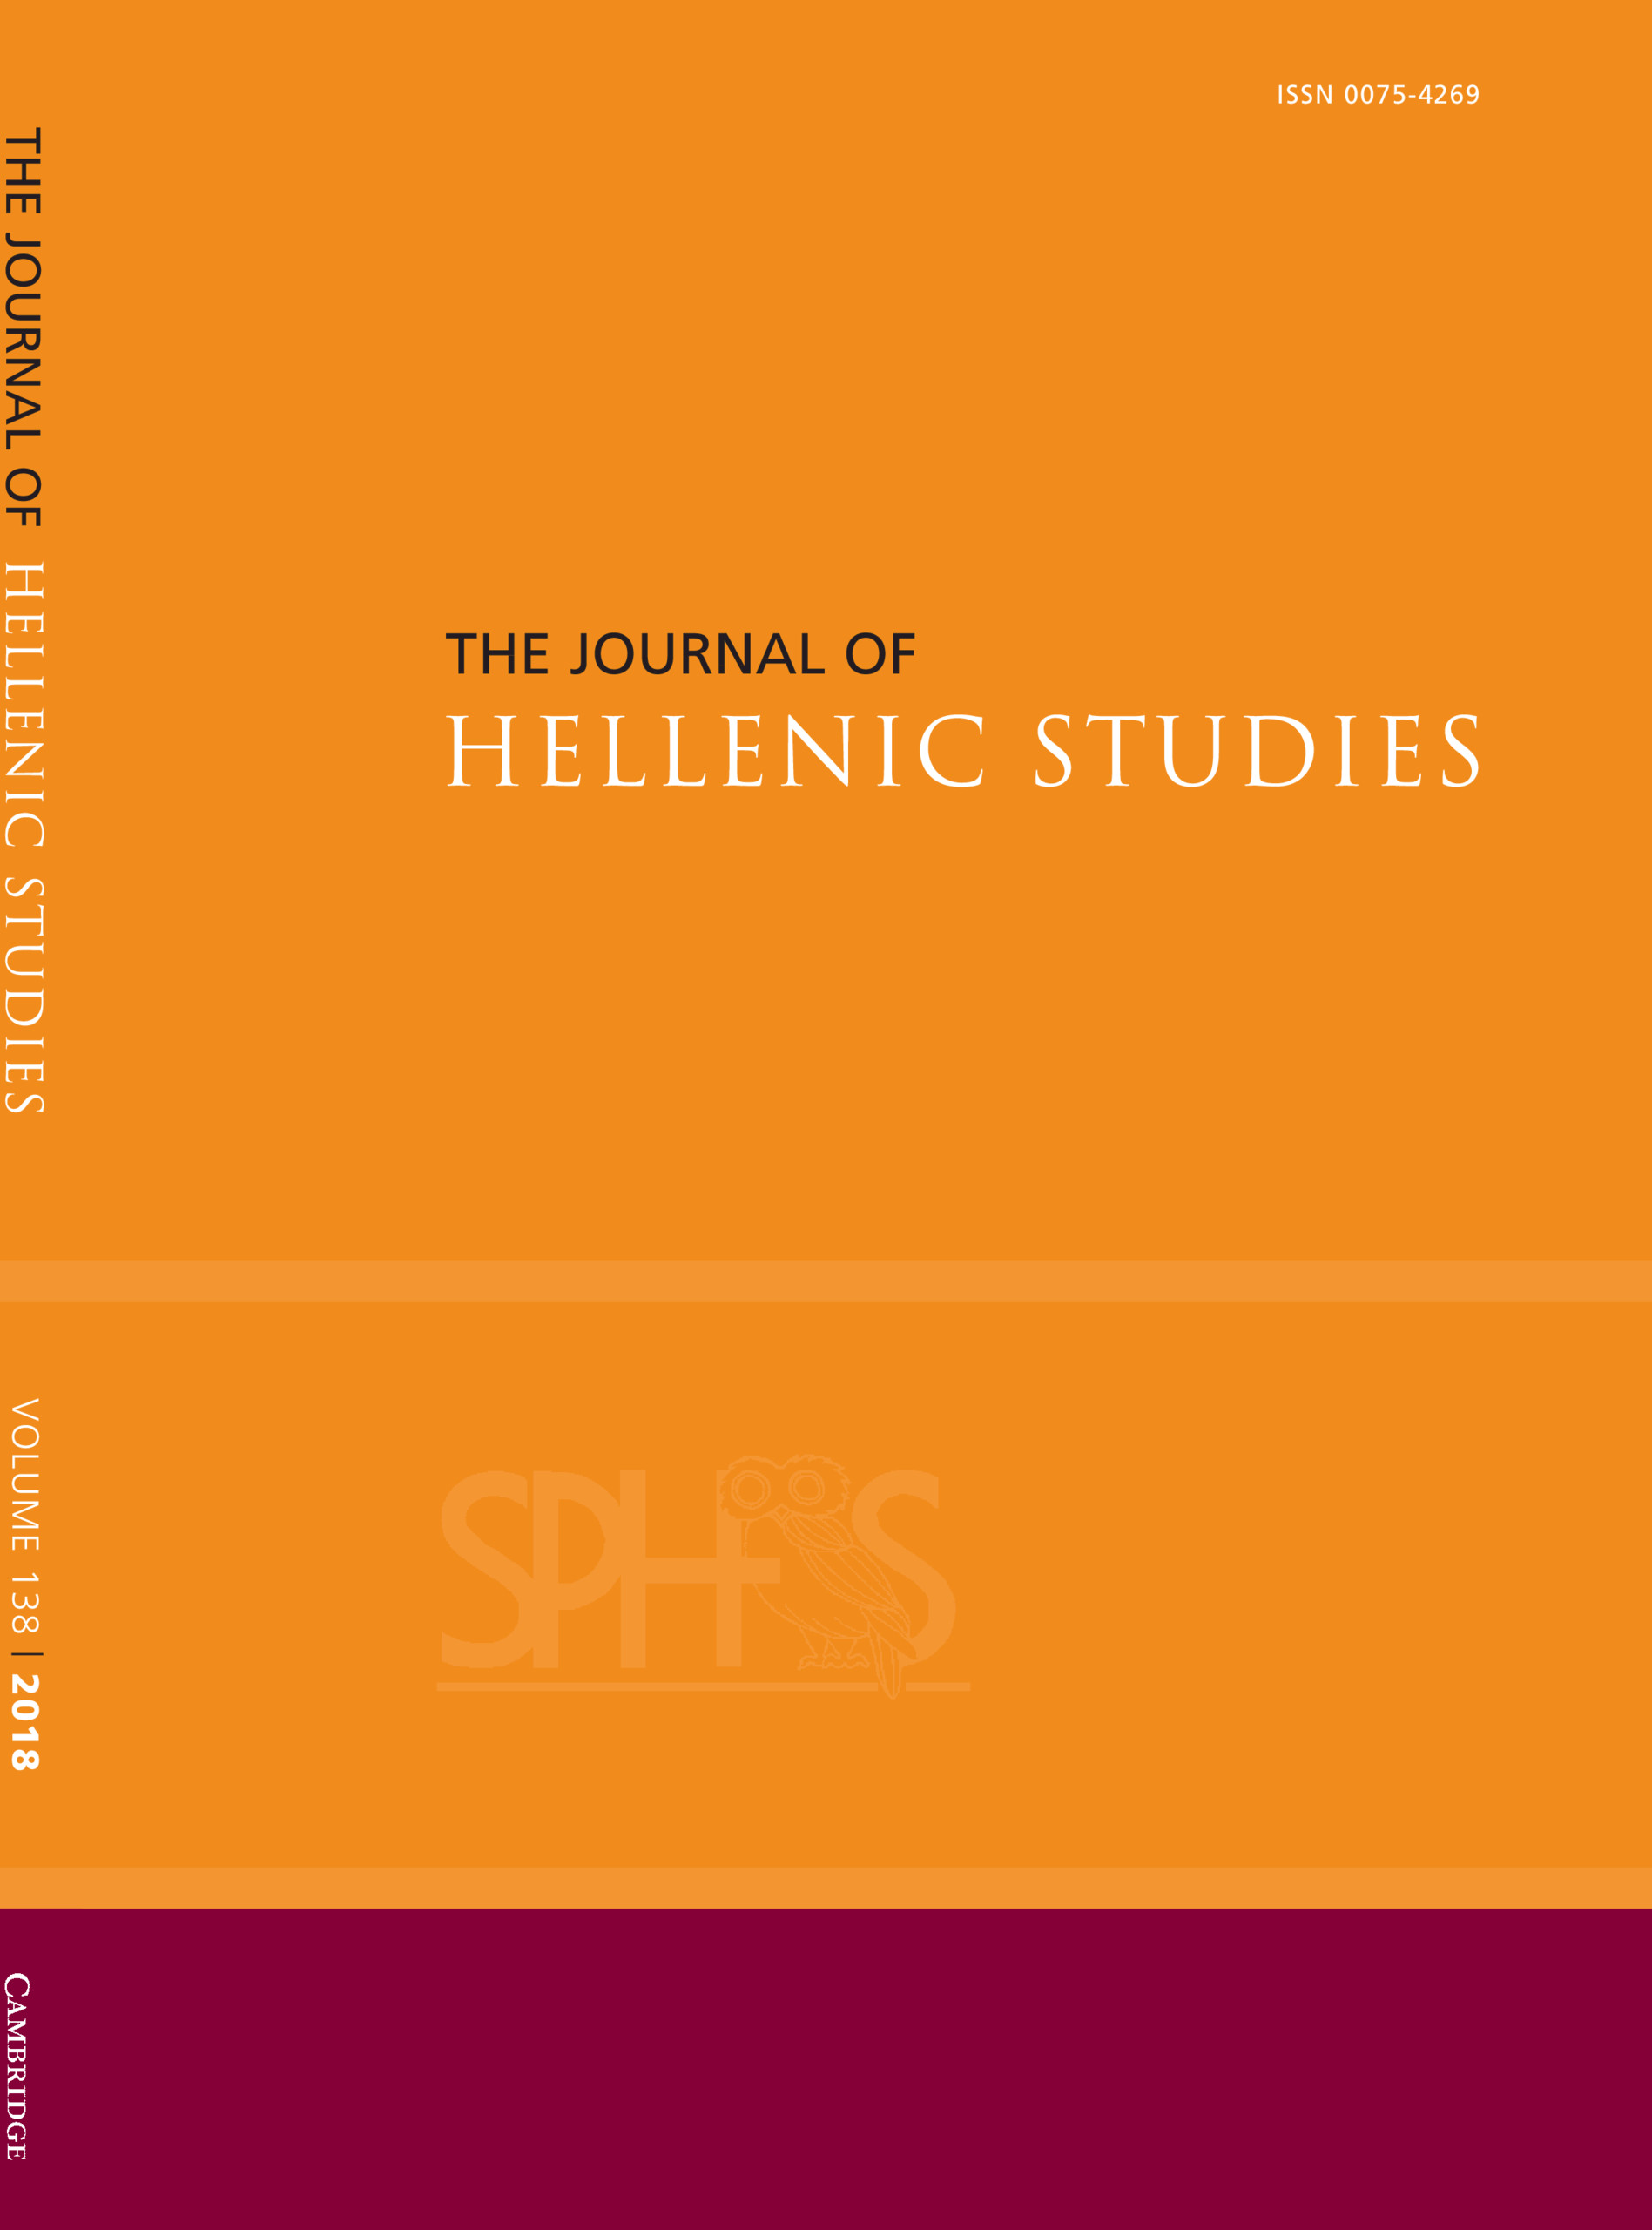 Journal Cover - Title in black and white lettering against an orange background with a horizontal magenta banner at the bottom.